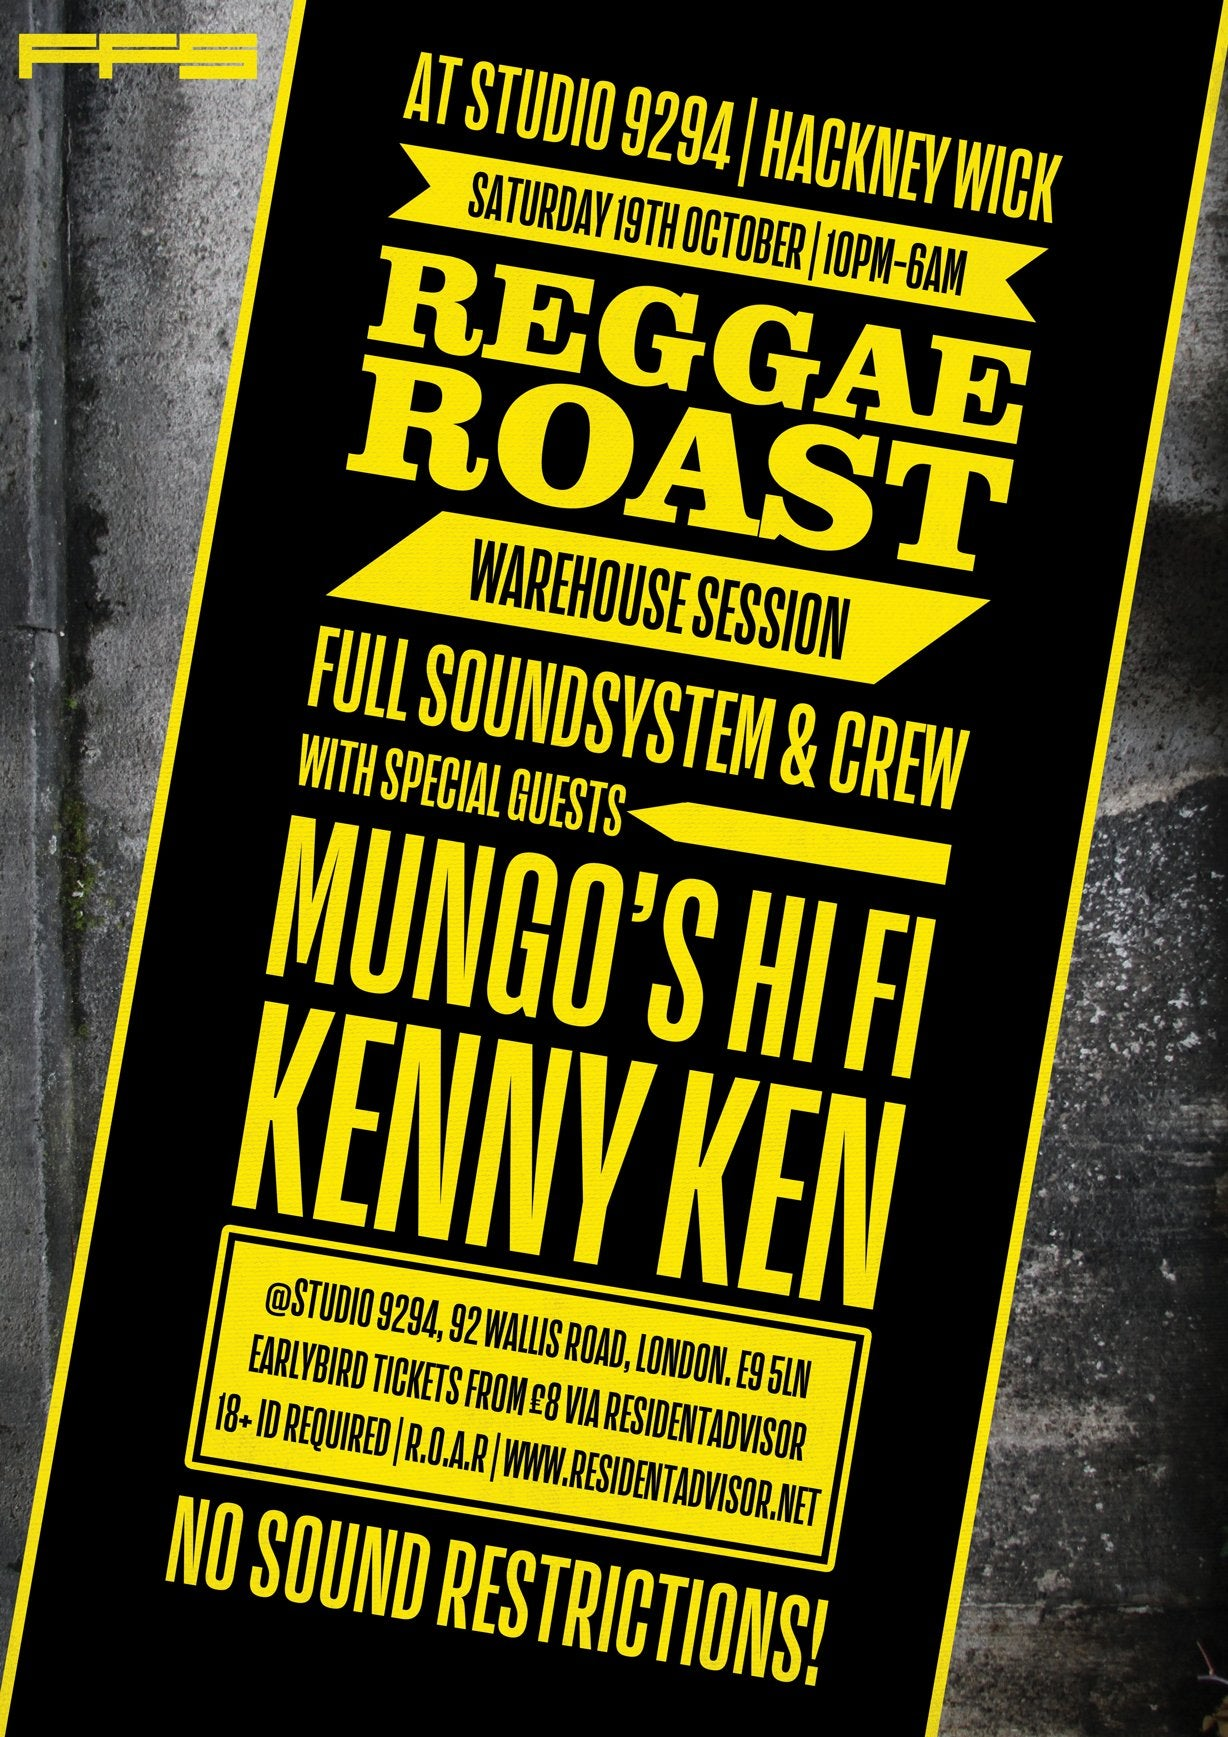 Reggae Roast Warehouse Party: Full Soundsystem!